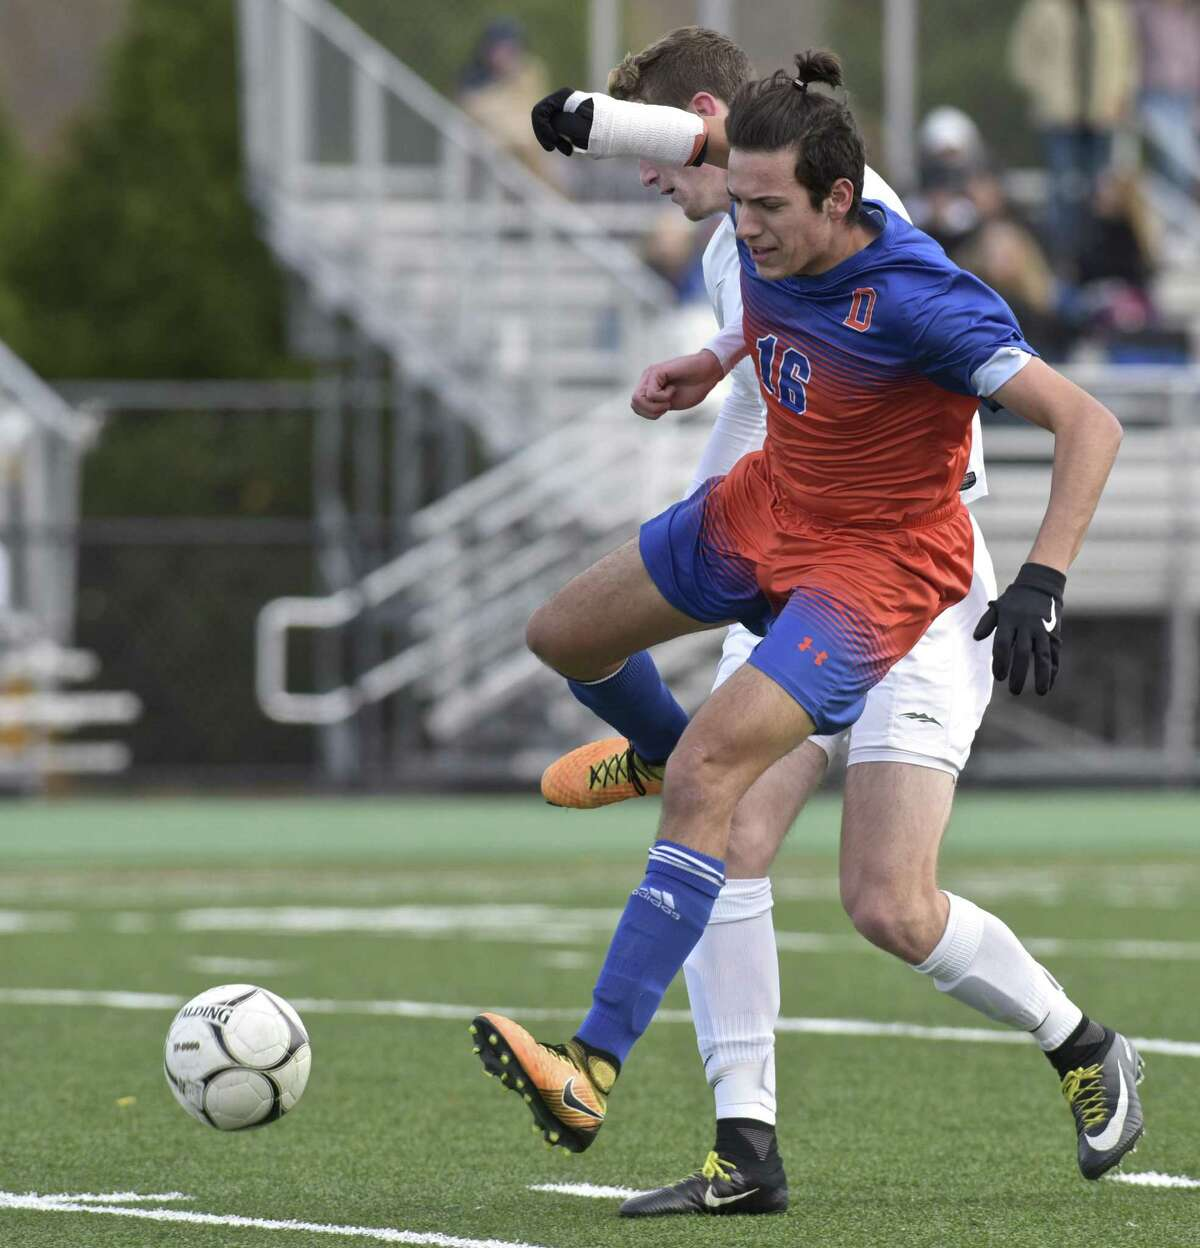 Boys Class LL Soccer game between Danbury and New Milford high schools, Wednesday afternoon at New Milford High School, in New Milford, Conn, November 8, 2017.